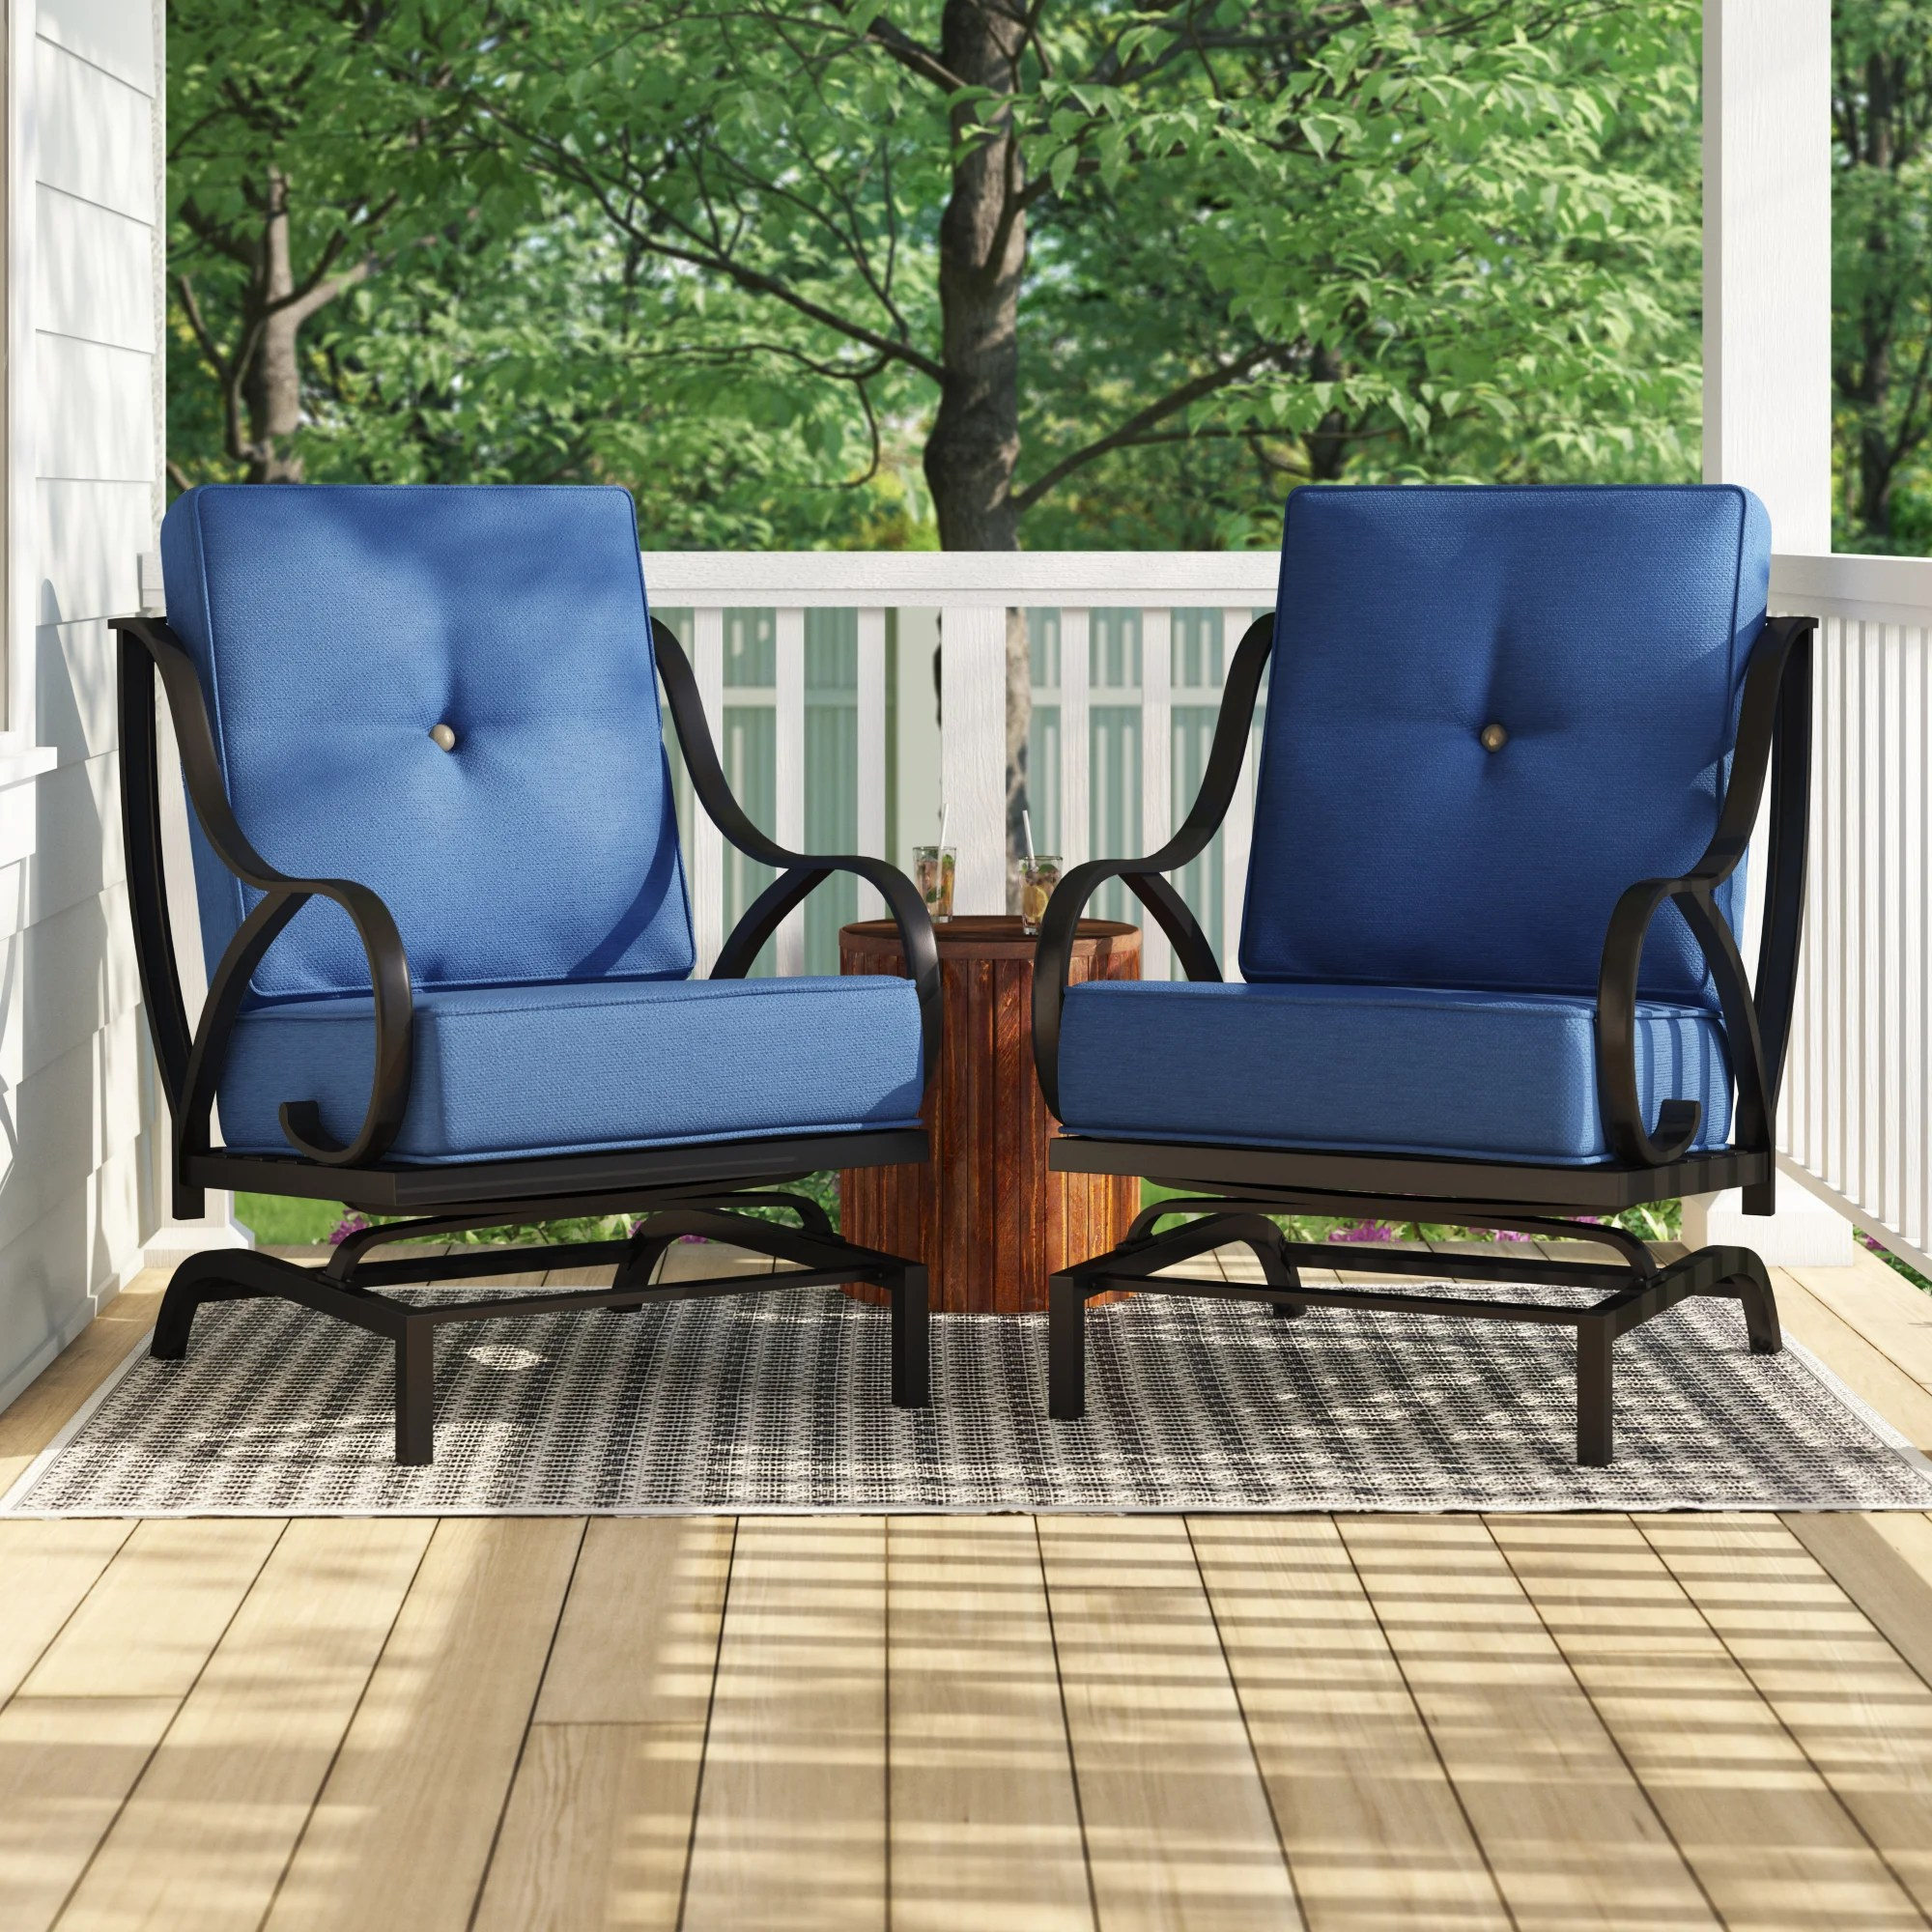 reid outdoor rocking motion patio chair with cushions